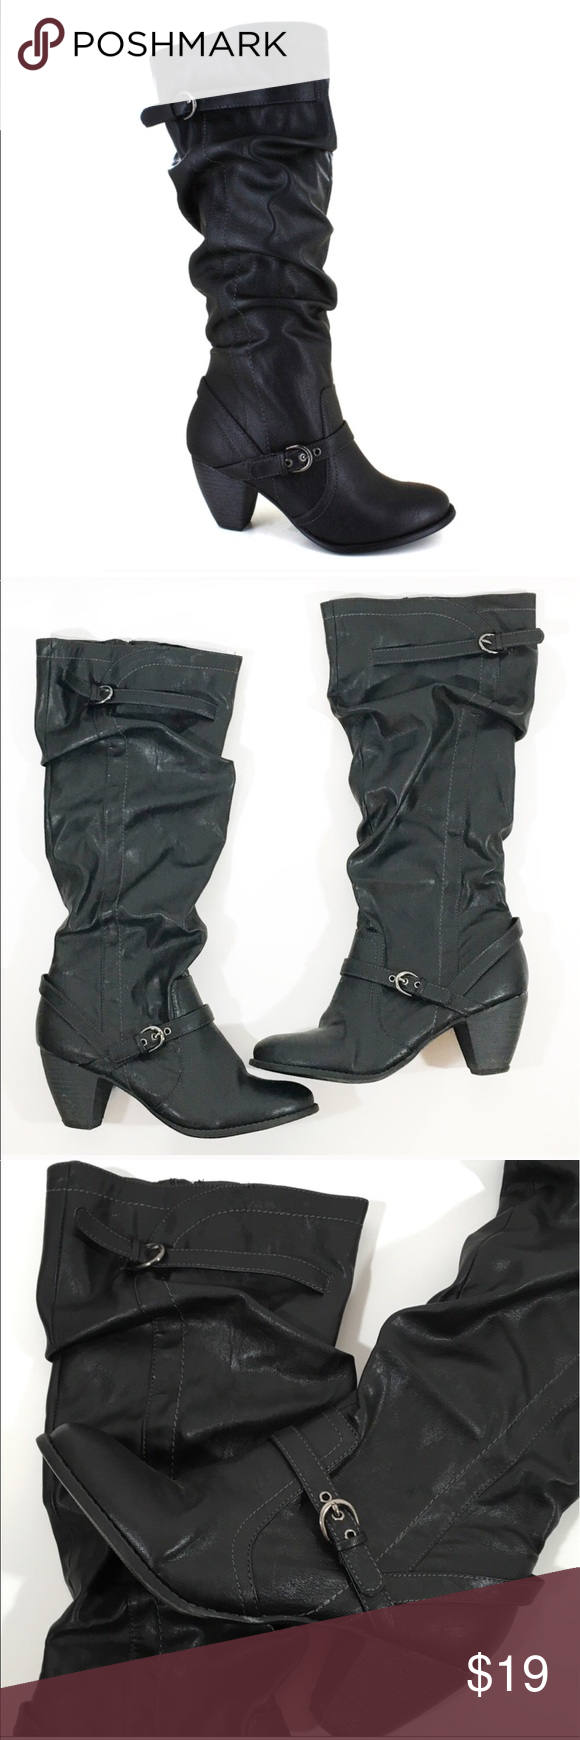 """❤ Black Slouchy Heeled Boots Black Heeled Boots are in excellent pre-loved condition. They have a slouchy look with silver buckles. 16.5"""" circumference at top of boot shaft.  Shaft is 15"""" tall. Size 9 medium width.  All man made materials soft fabric lining with a cushioned insole inside zipper for an easy on and off buckle and strap detailing 3-inch heel   🔺Questions? Please ask.  🔺I want your Poshmark experience to be easy & enjoyable. 🔺Thank you for shopping at Posh Mishmosh. jellypop…"""